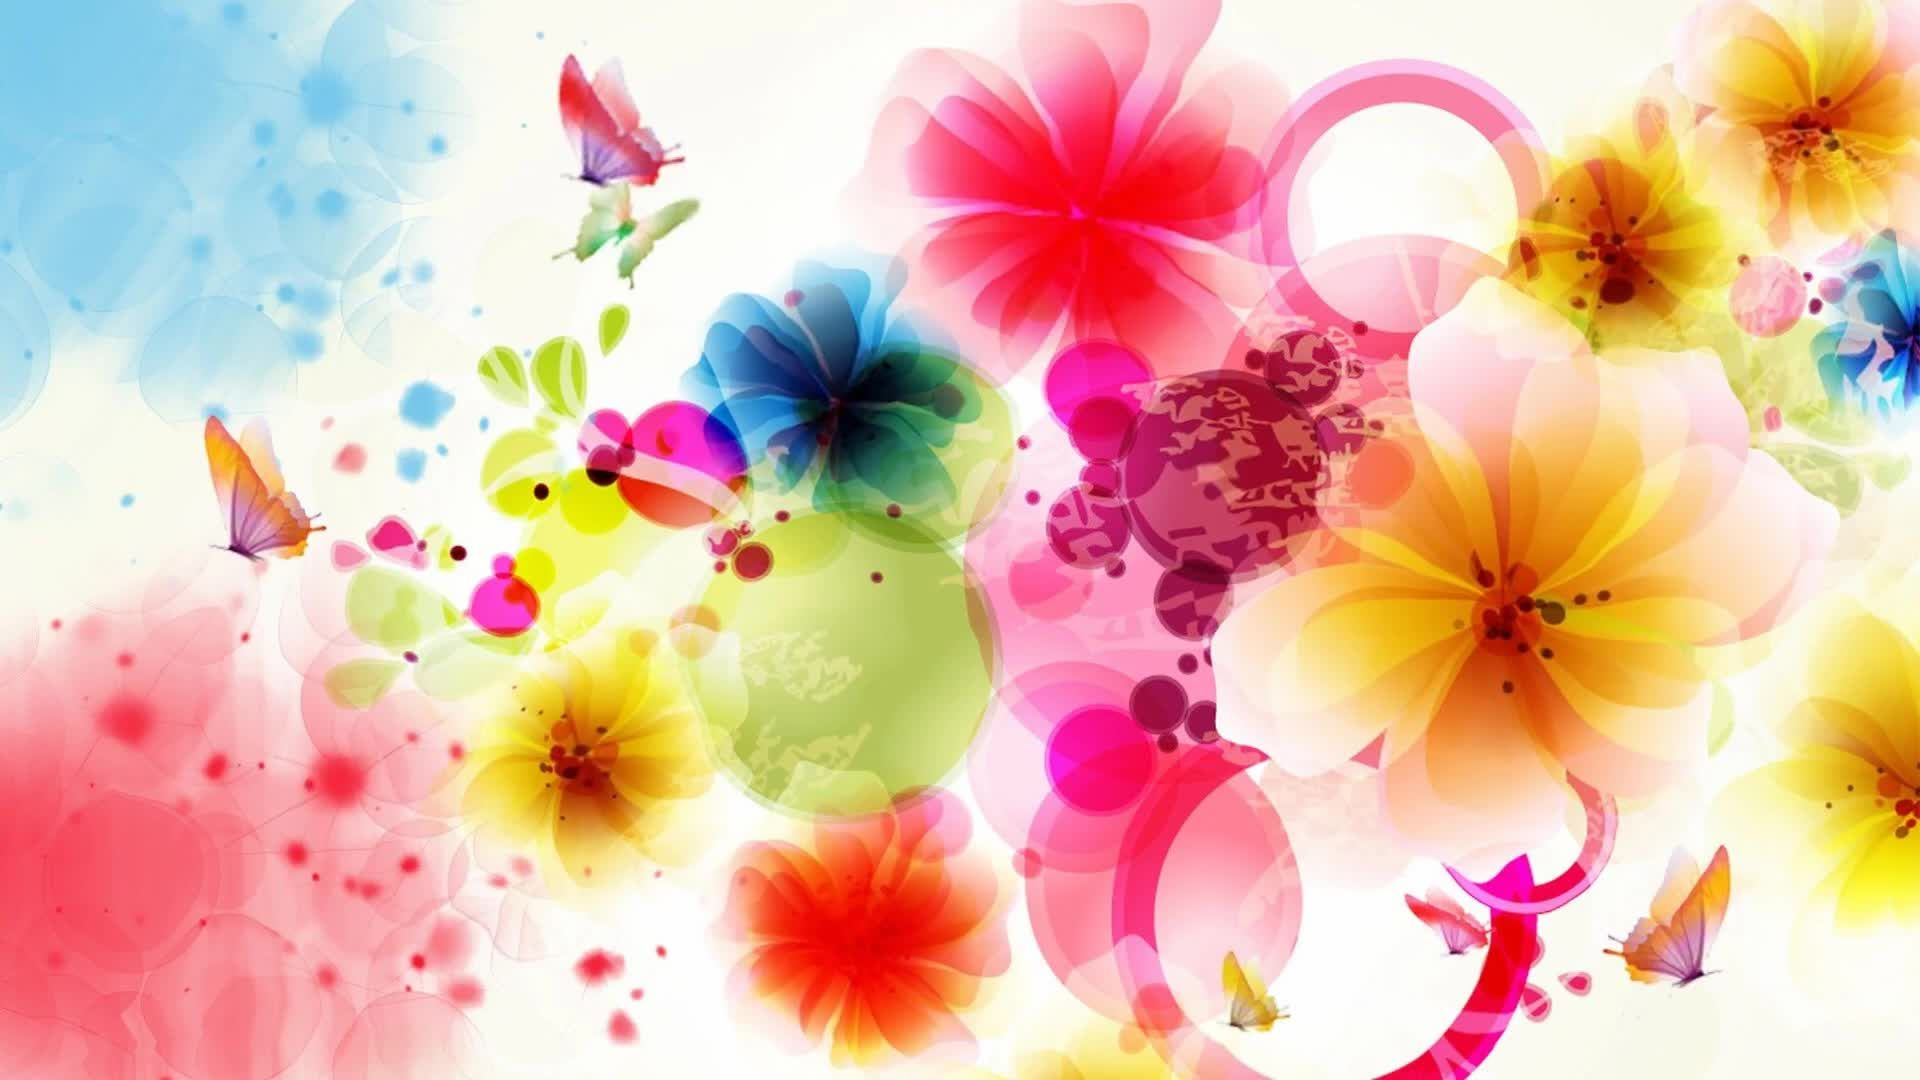 Bright Flowers And Butterflies, Background With